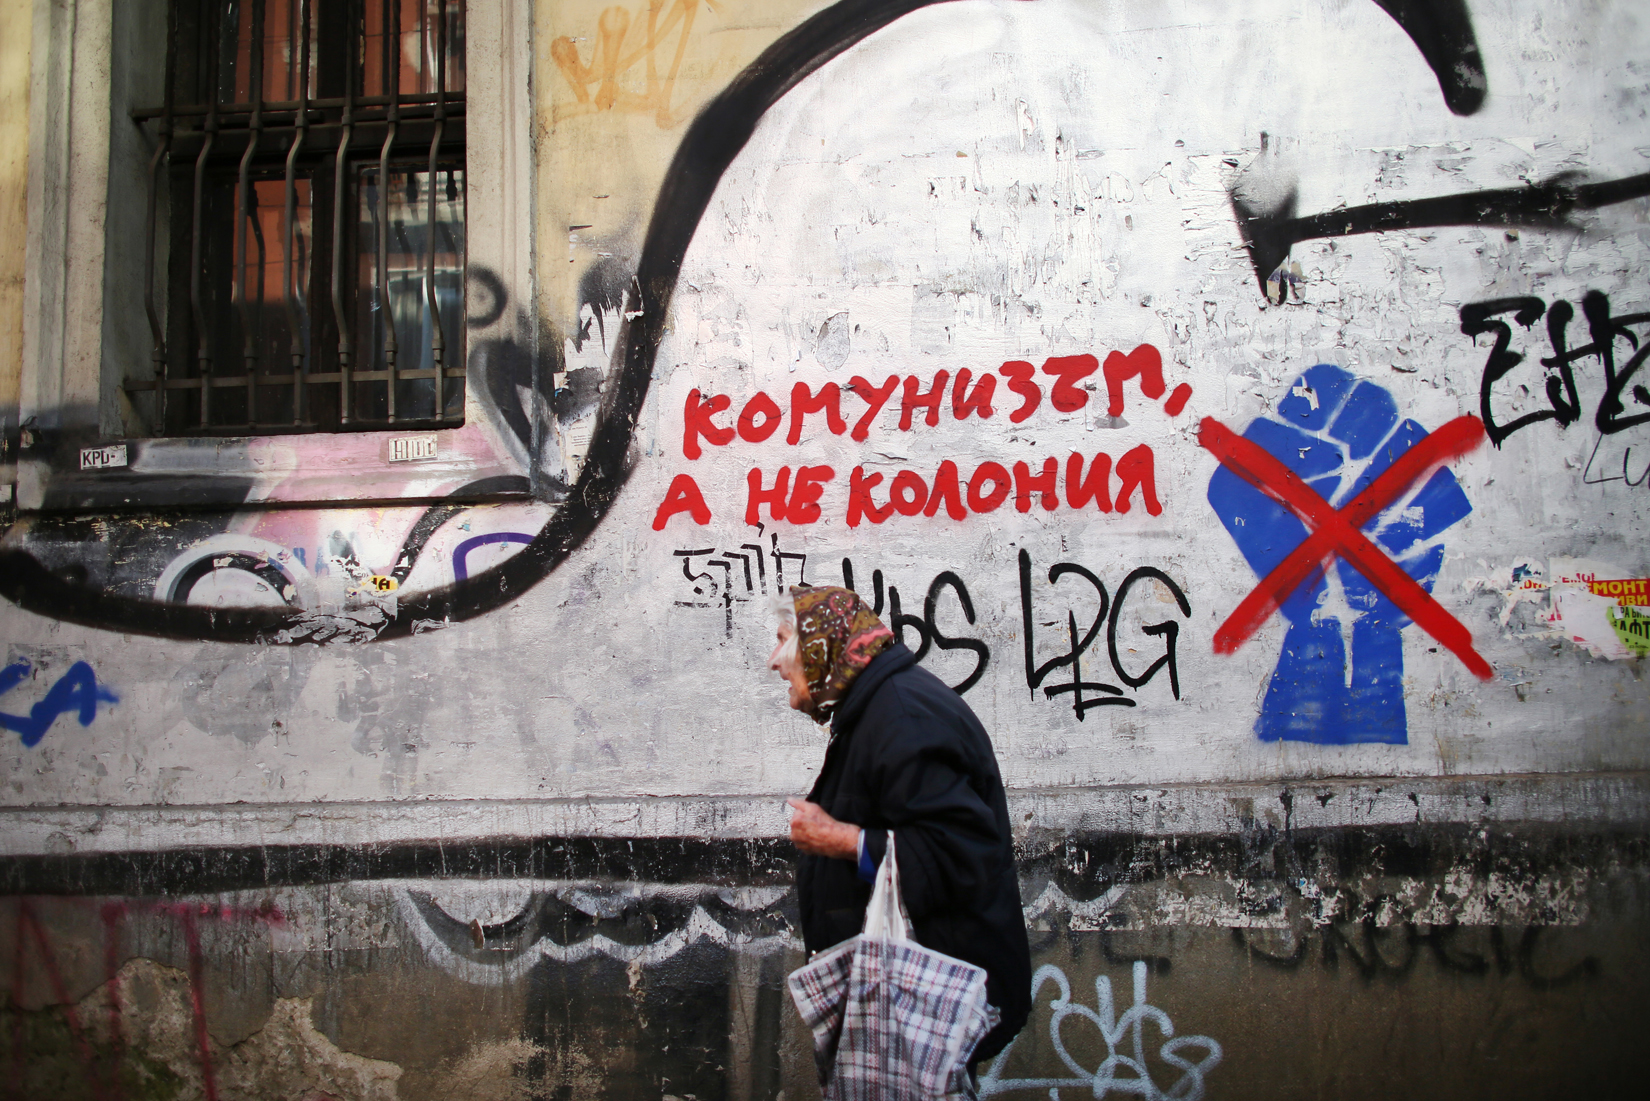 A woman walks by graffiti of the fist that came to symbolize civic protests against political corruption in 2013, seen in Bulgaria's capital Sofia, on October 4th, 2014. The fist has been crossed off by a second layer of graffiti, with an adjacent sign that reads, {quote}Communism, but not a Colony,{quote} in likely reference to what some political parties decry as Westernization of interests in the country. Bulgaria is still one of the poorest, most corrupt nations in the European Union, its post-1989 hopes wilted by political corruption, high crime rates and skyrocketing inflation. The ennui etches a permanent path across the average passerby's face, against a backdrop of rotting architecture, joblessness, and a vast population decline.